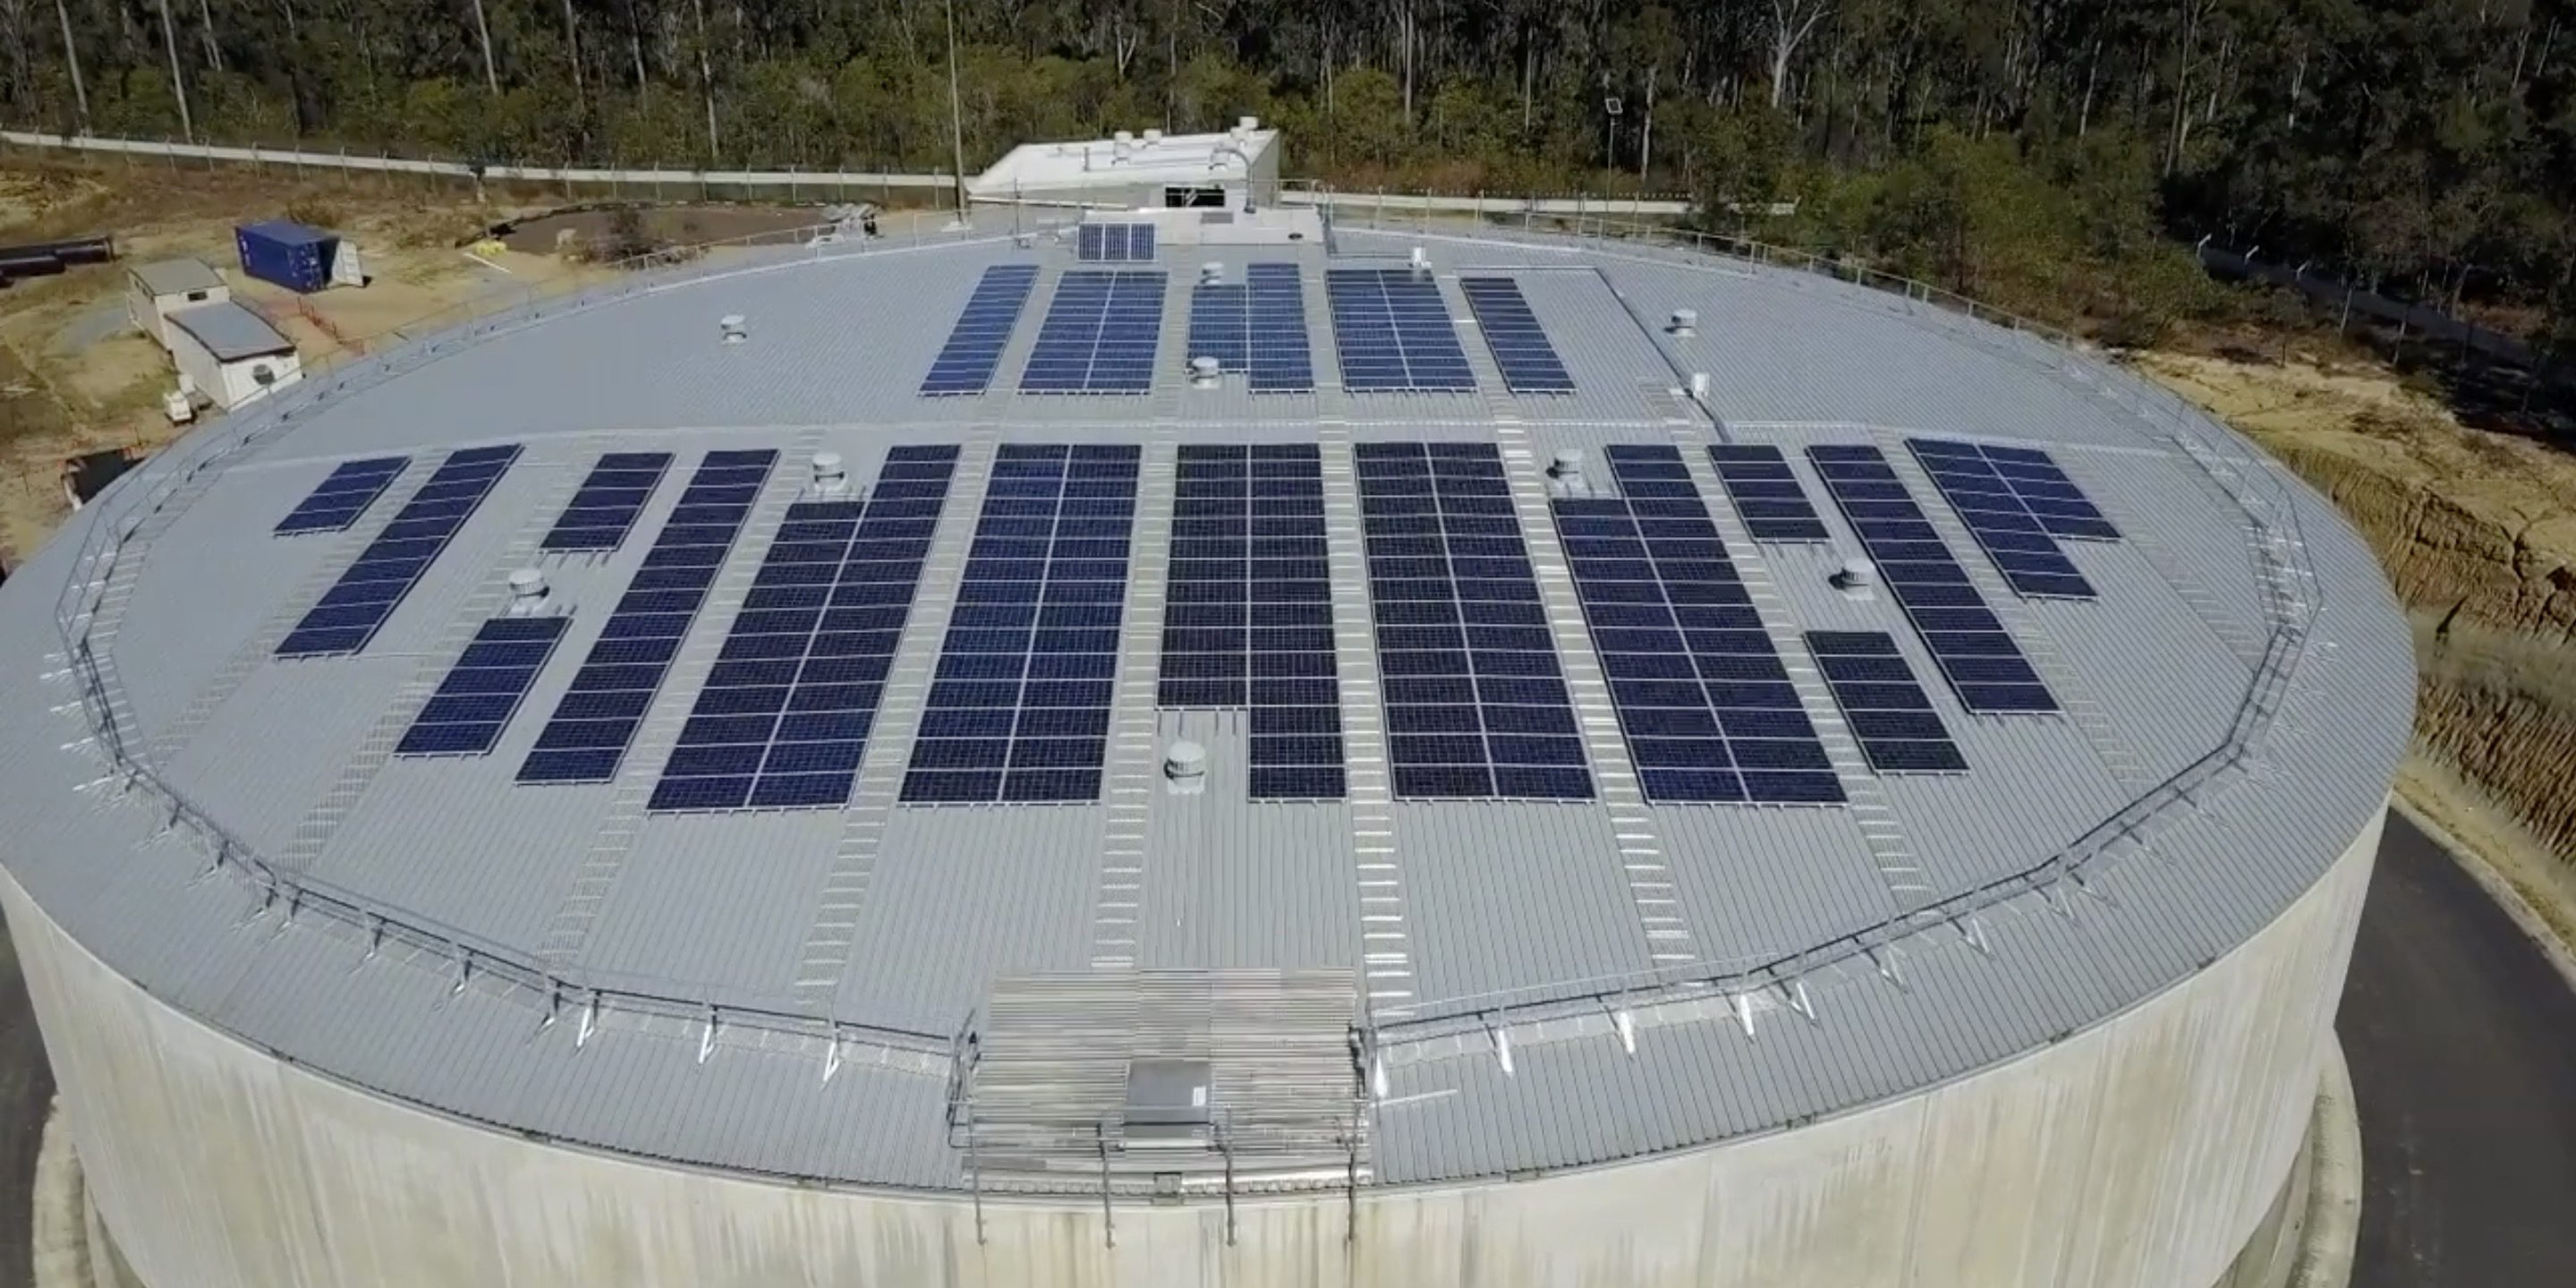 A single Tesla Powerpack battery saved this Australian town over $1.5 million in grid connection costs